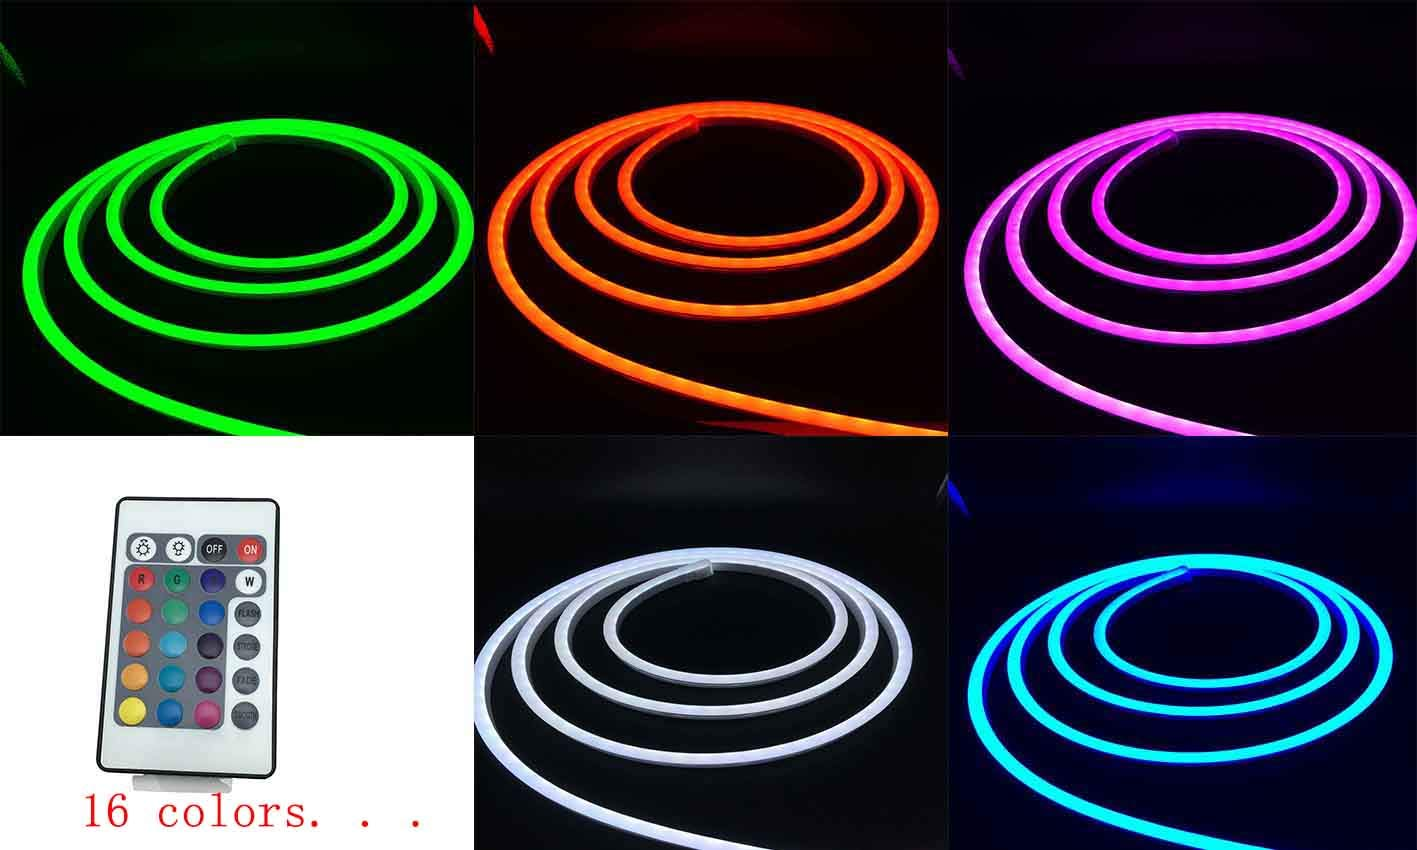 Pearlight DC12V Neon Led RGB Rope Light, Flexible/Waterproof/Multi-Color/Remote Control for Home/Garden/Architectural Decoration (10 FT / 3 Meters, RGB)